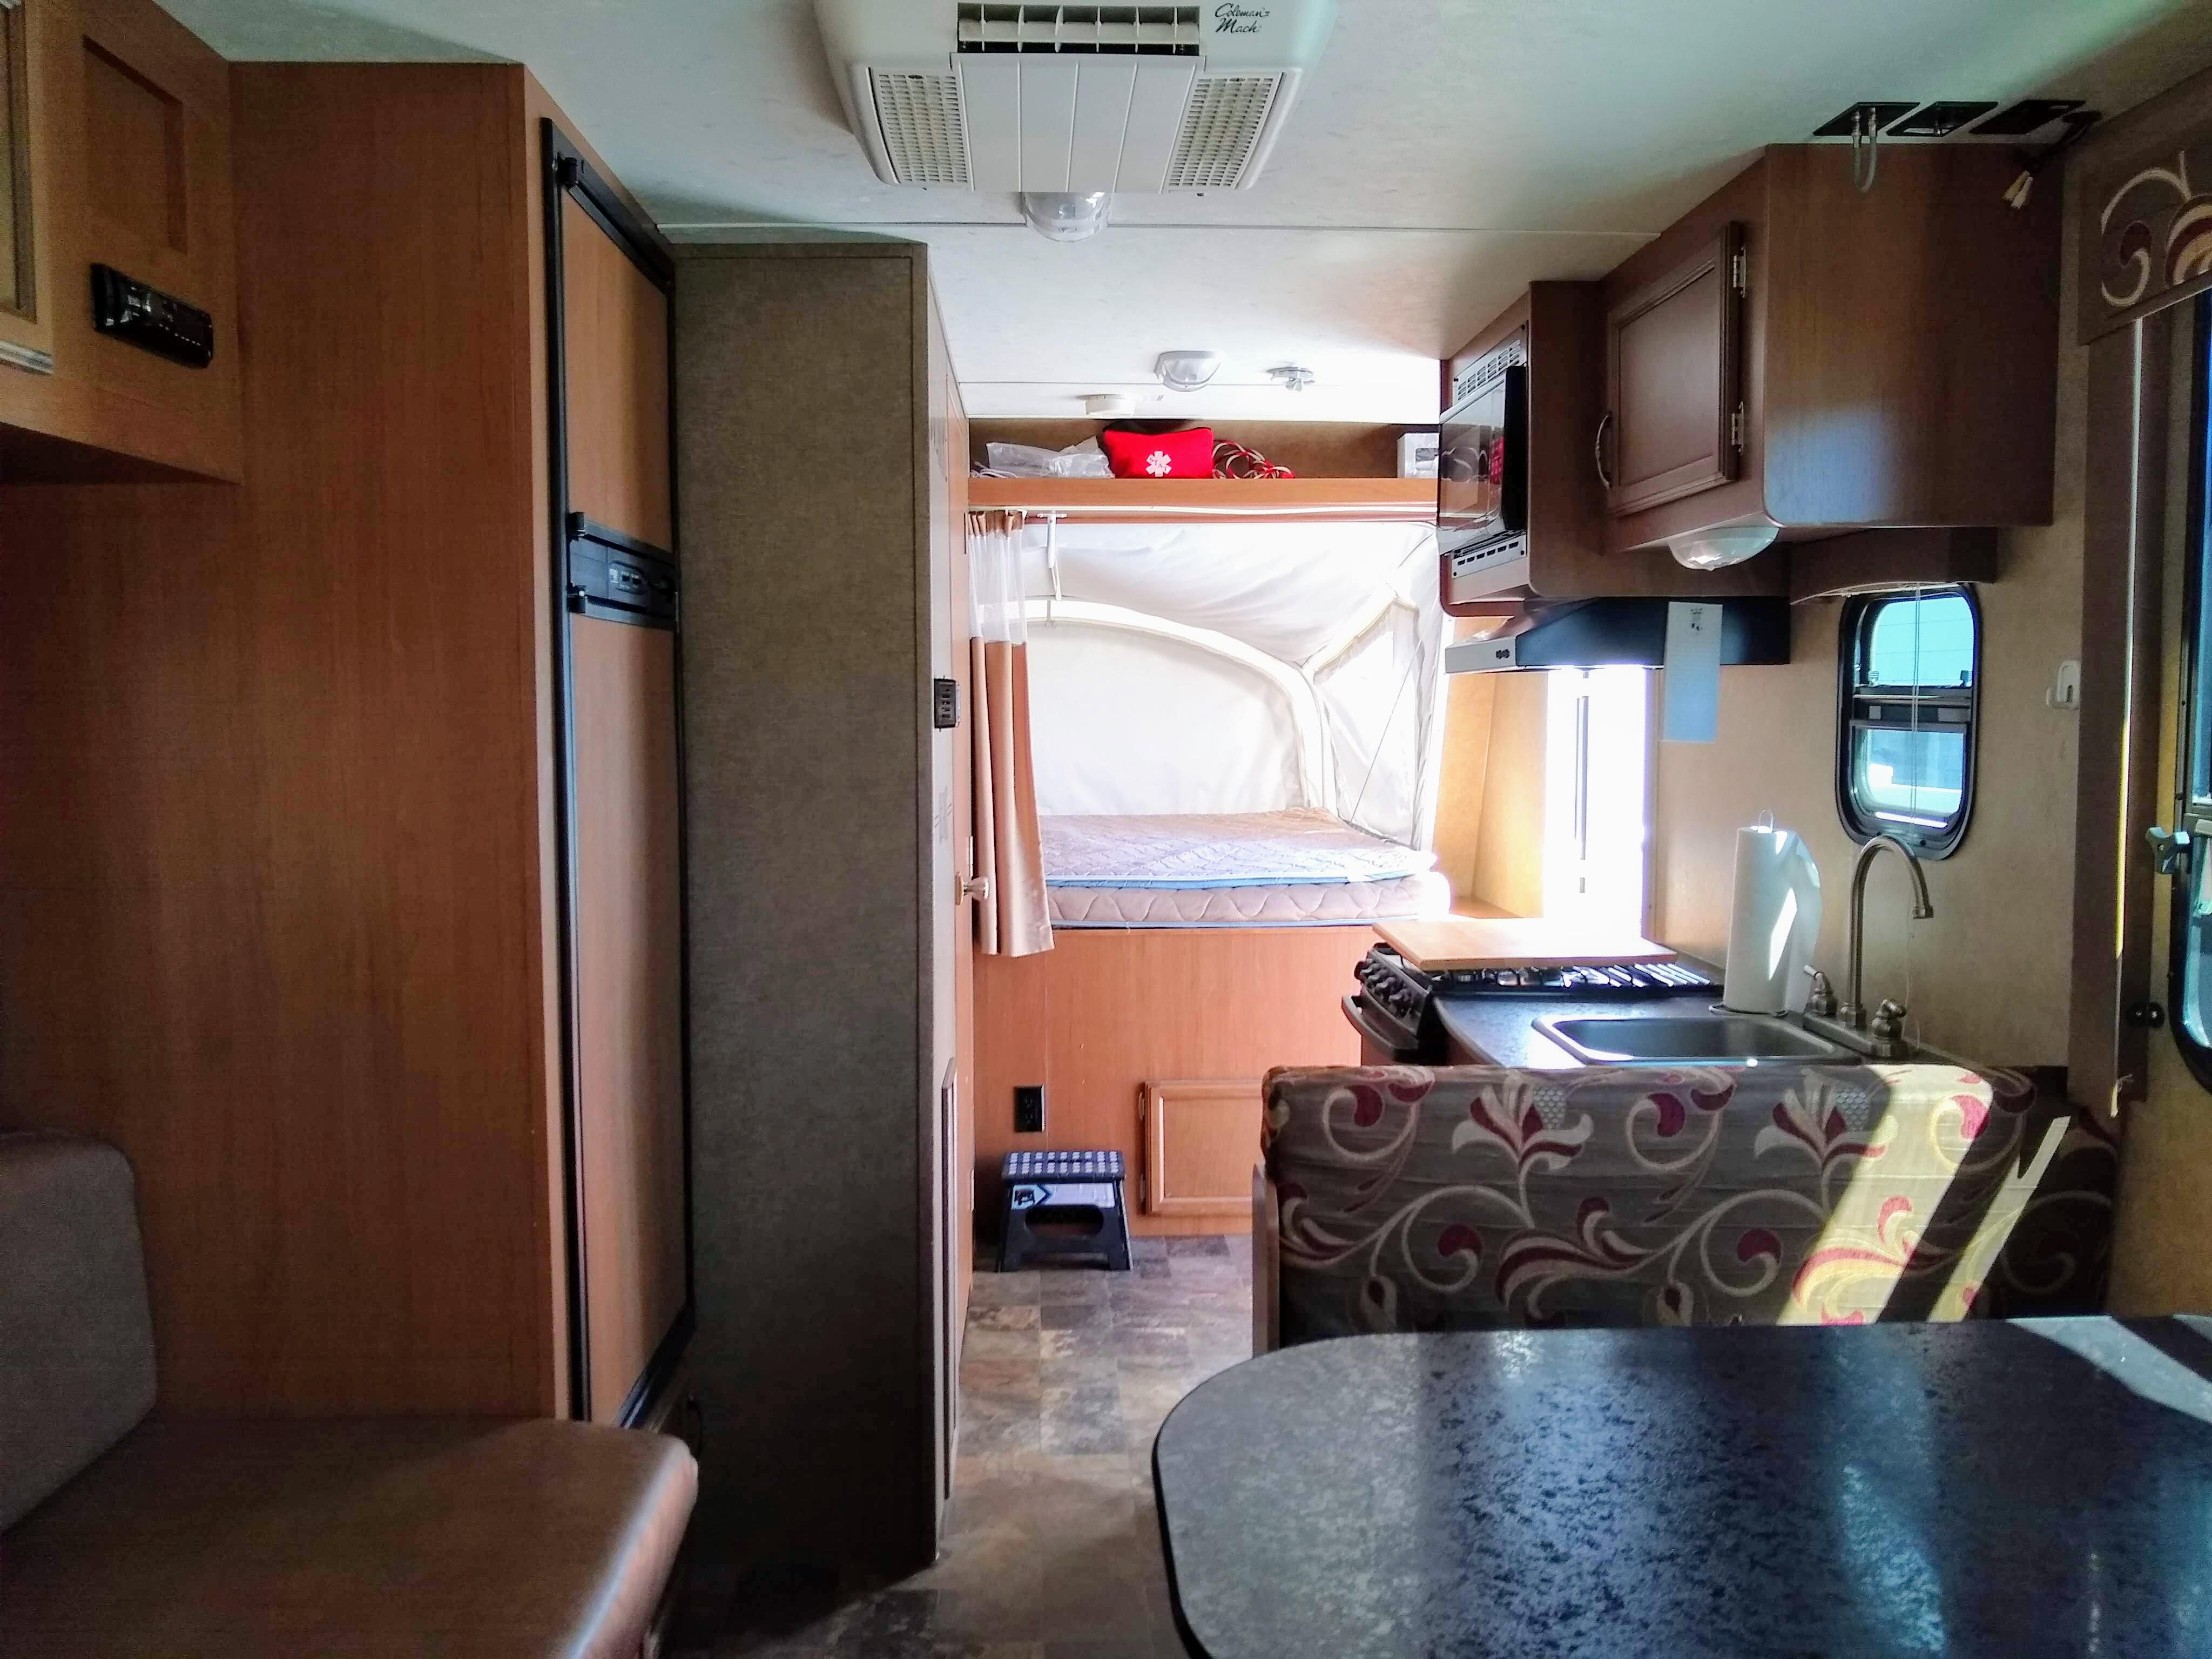 Standing in the back looking to front. The fridge and freezer on the right, behind the bathroom. Notice step stool to help get up to the front bed.. Starcraft Travel Star 2014